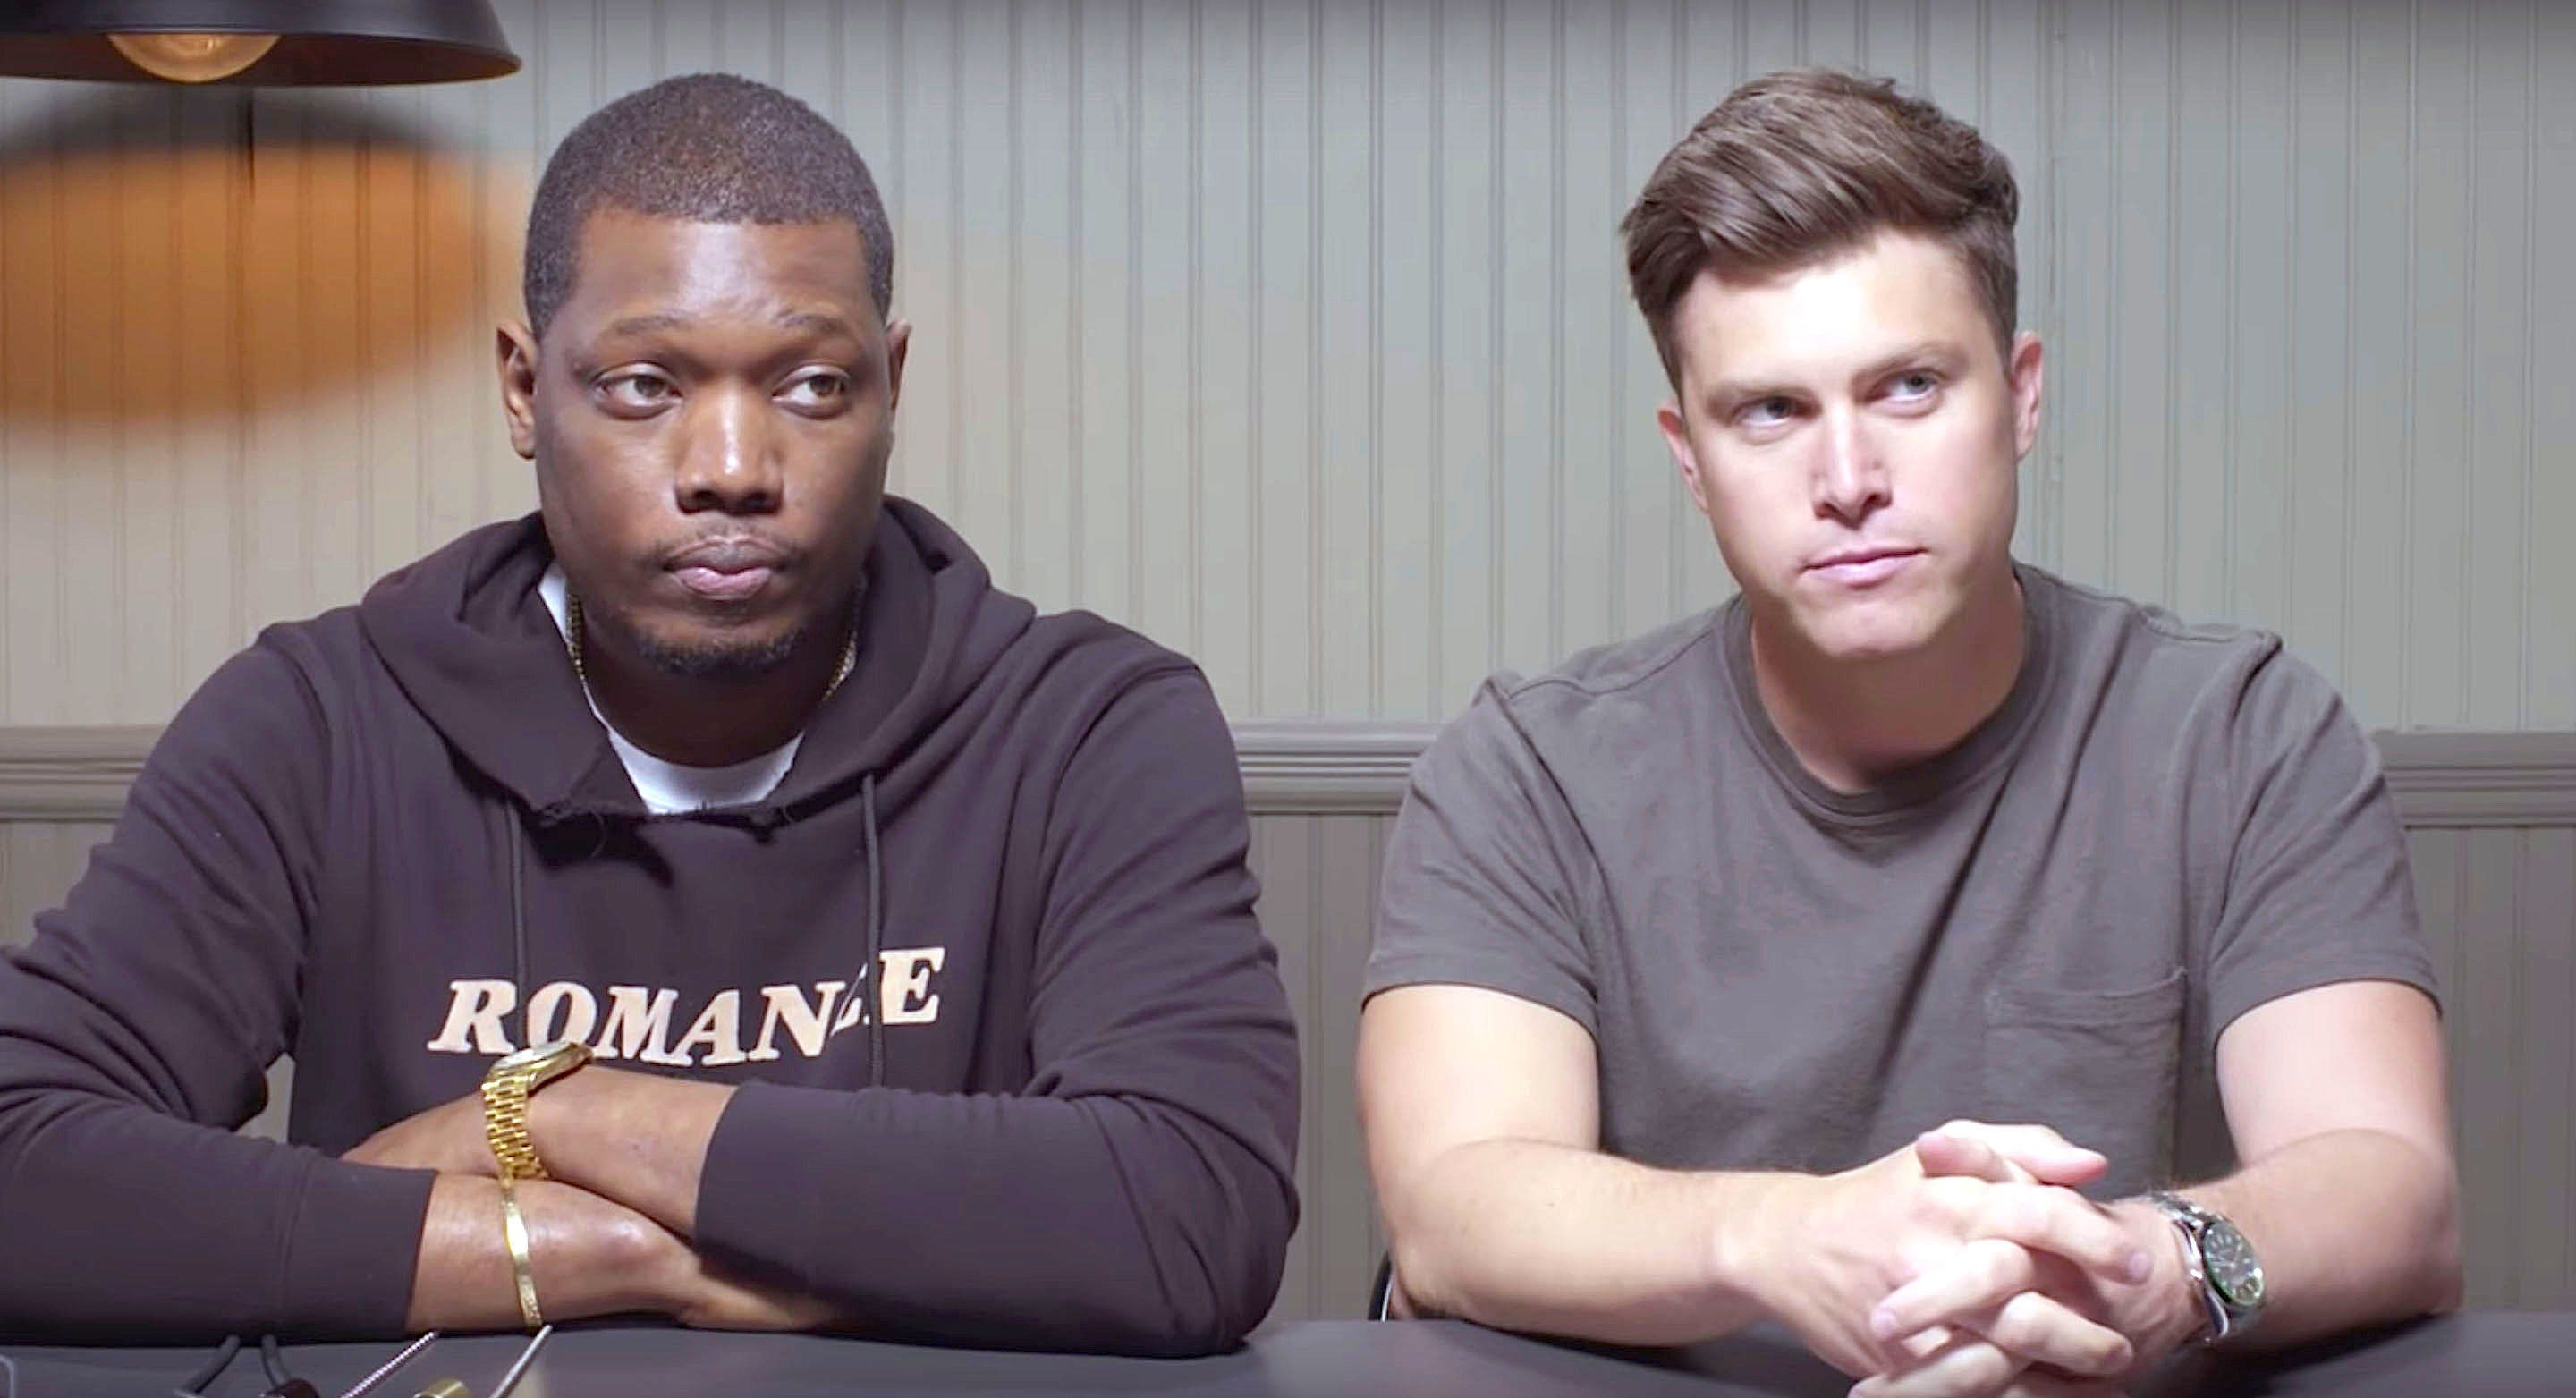 Michael Che and Colin Jost of Saturday Night Live take a lie detector test